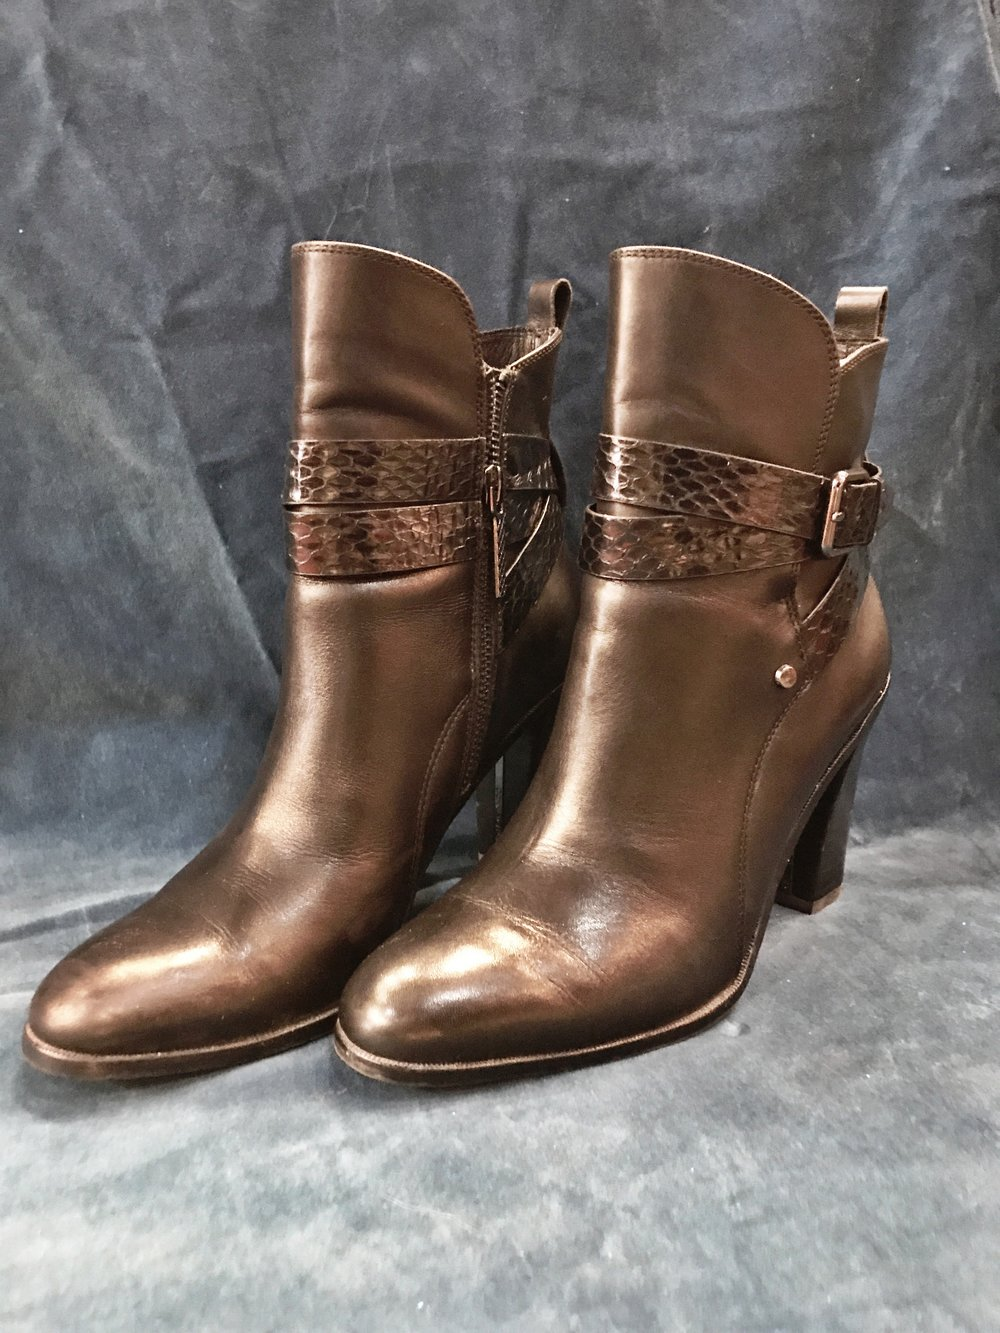 Donald J Pliner booties, $148 (originally $329), size 7.5